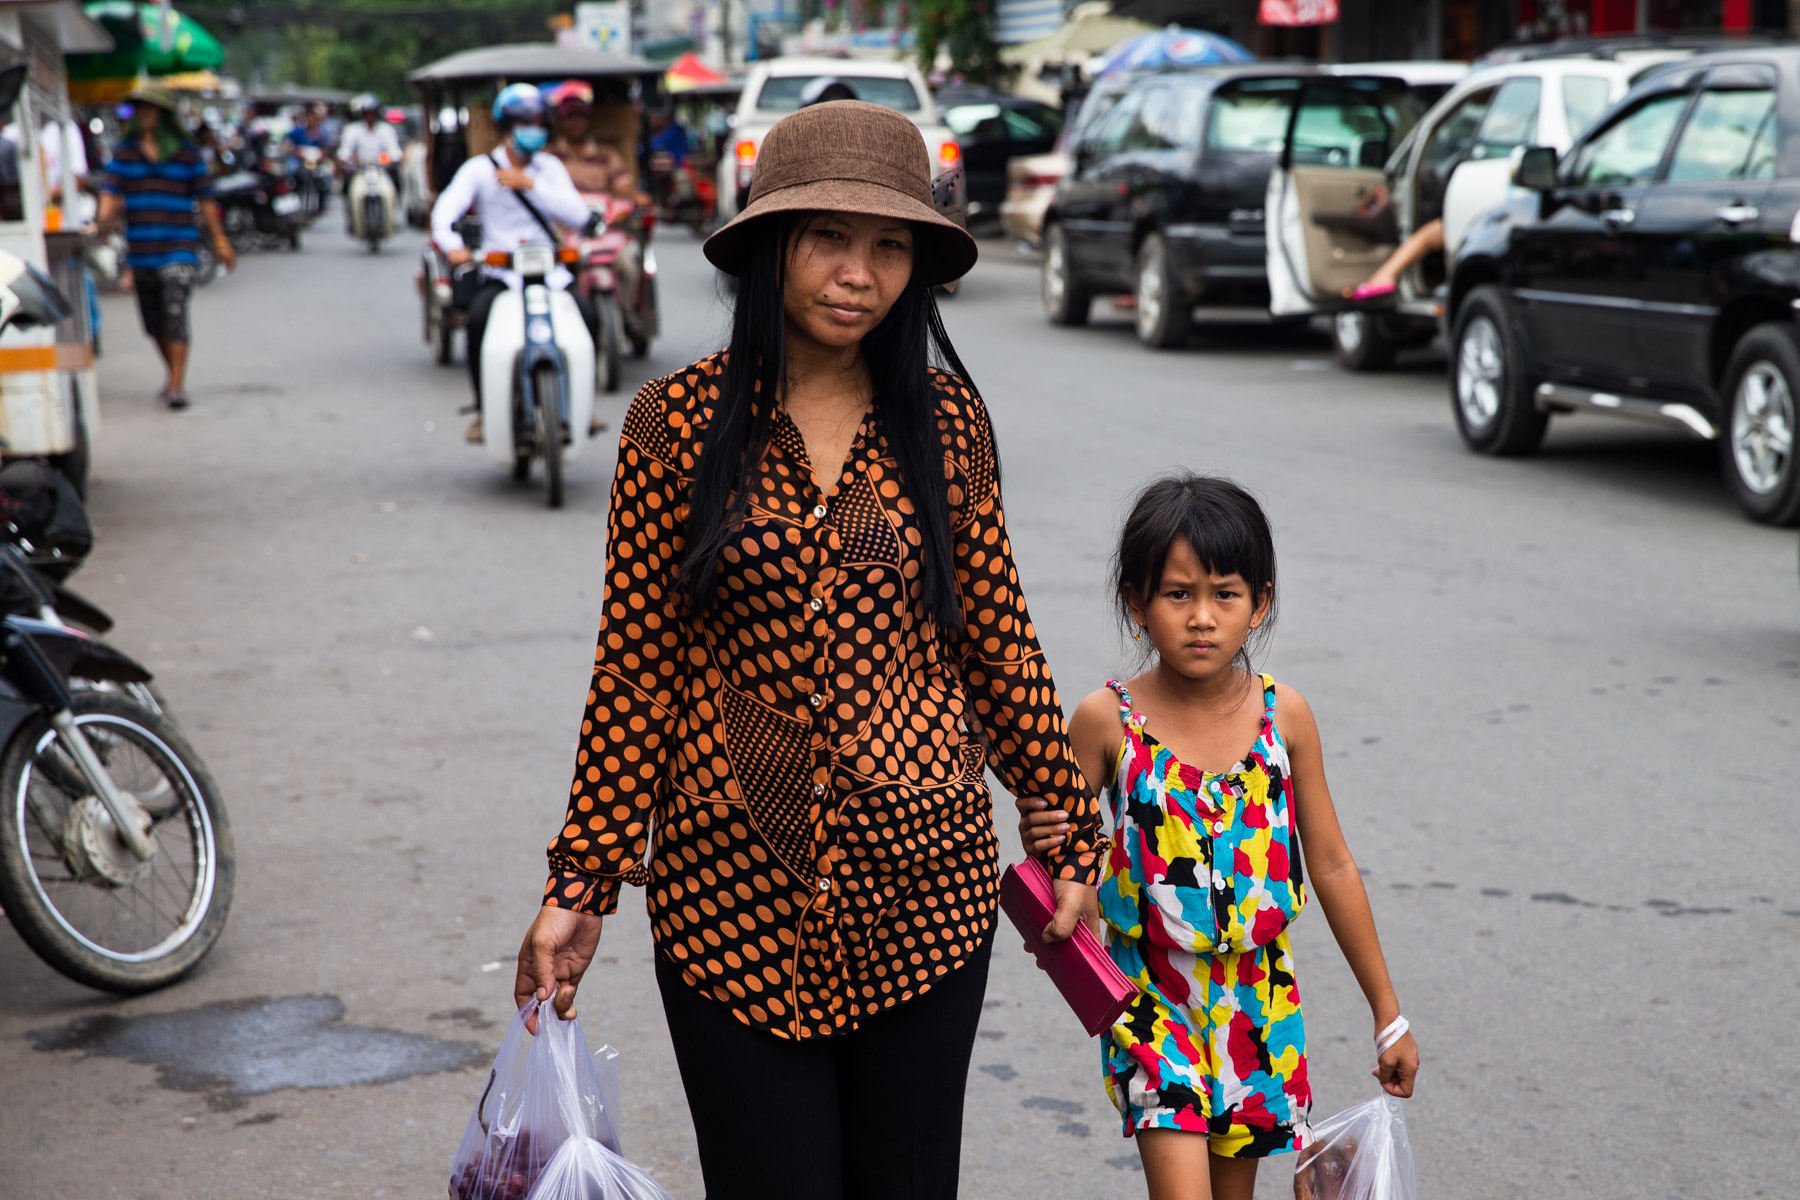 Mother and child walking down road